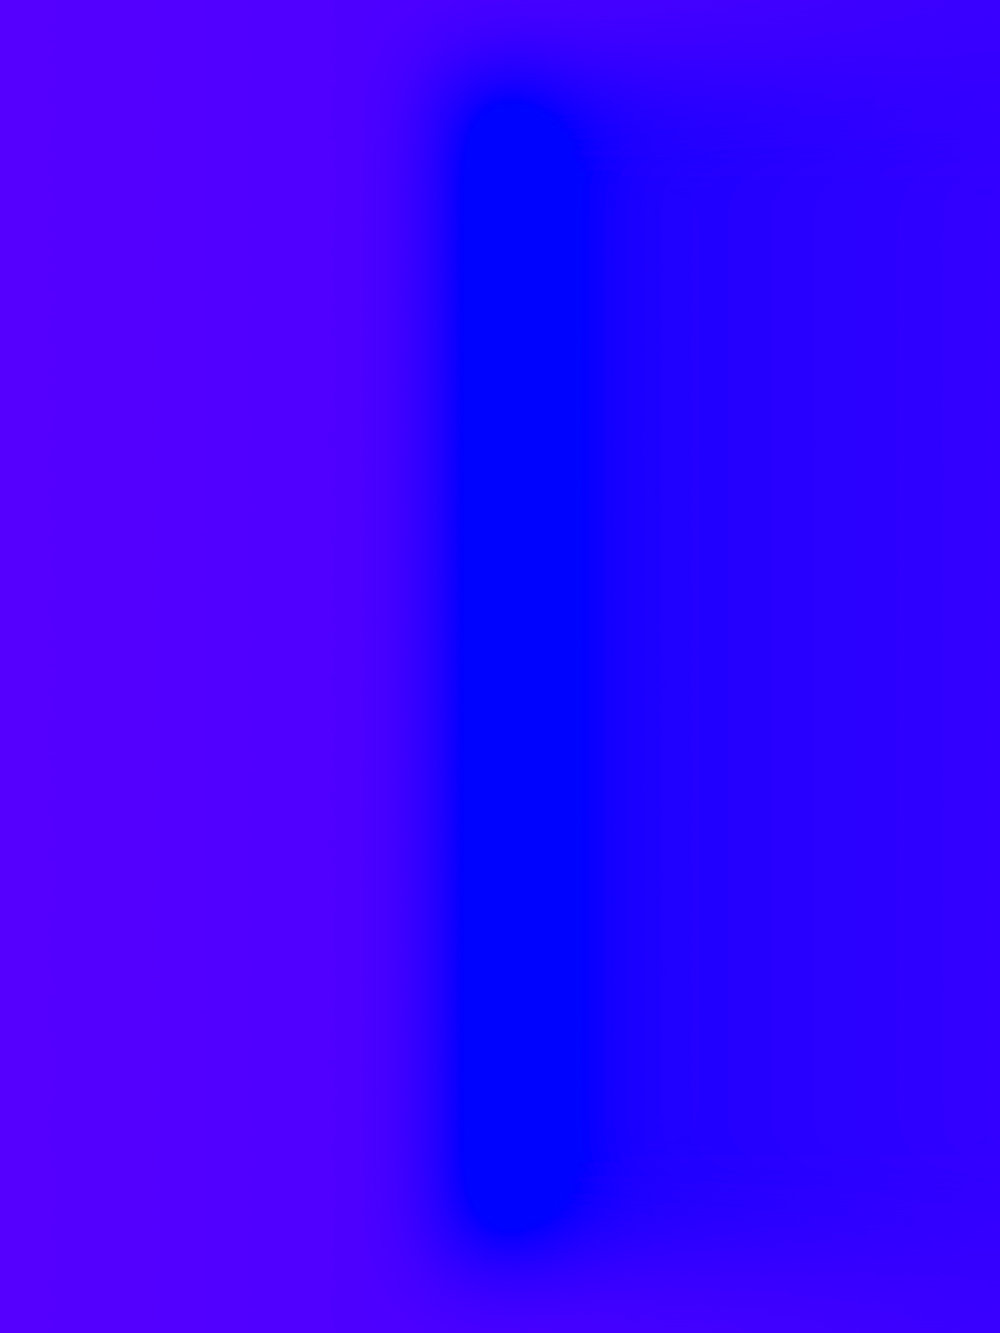 aapo nikkanen abstract intense blue.jpg